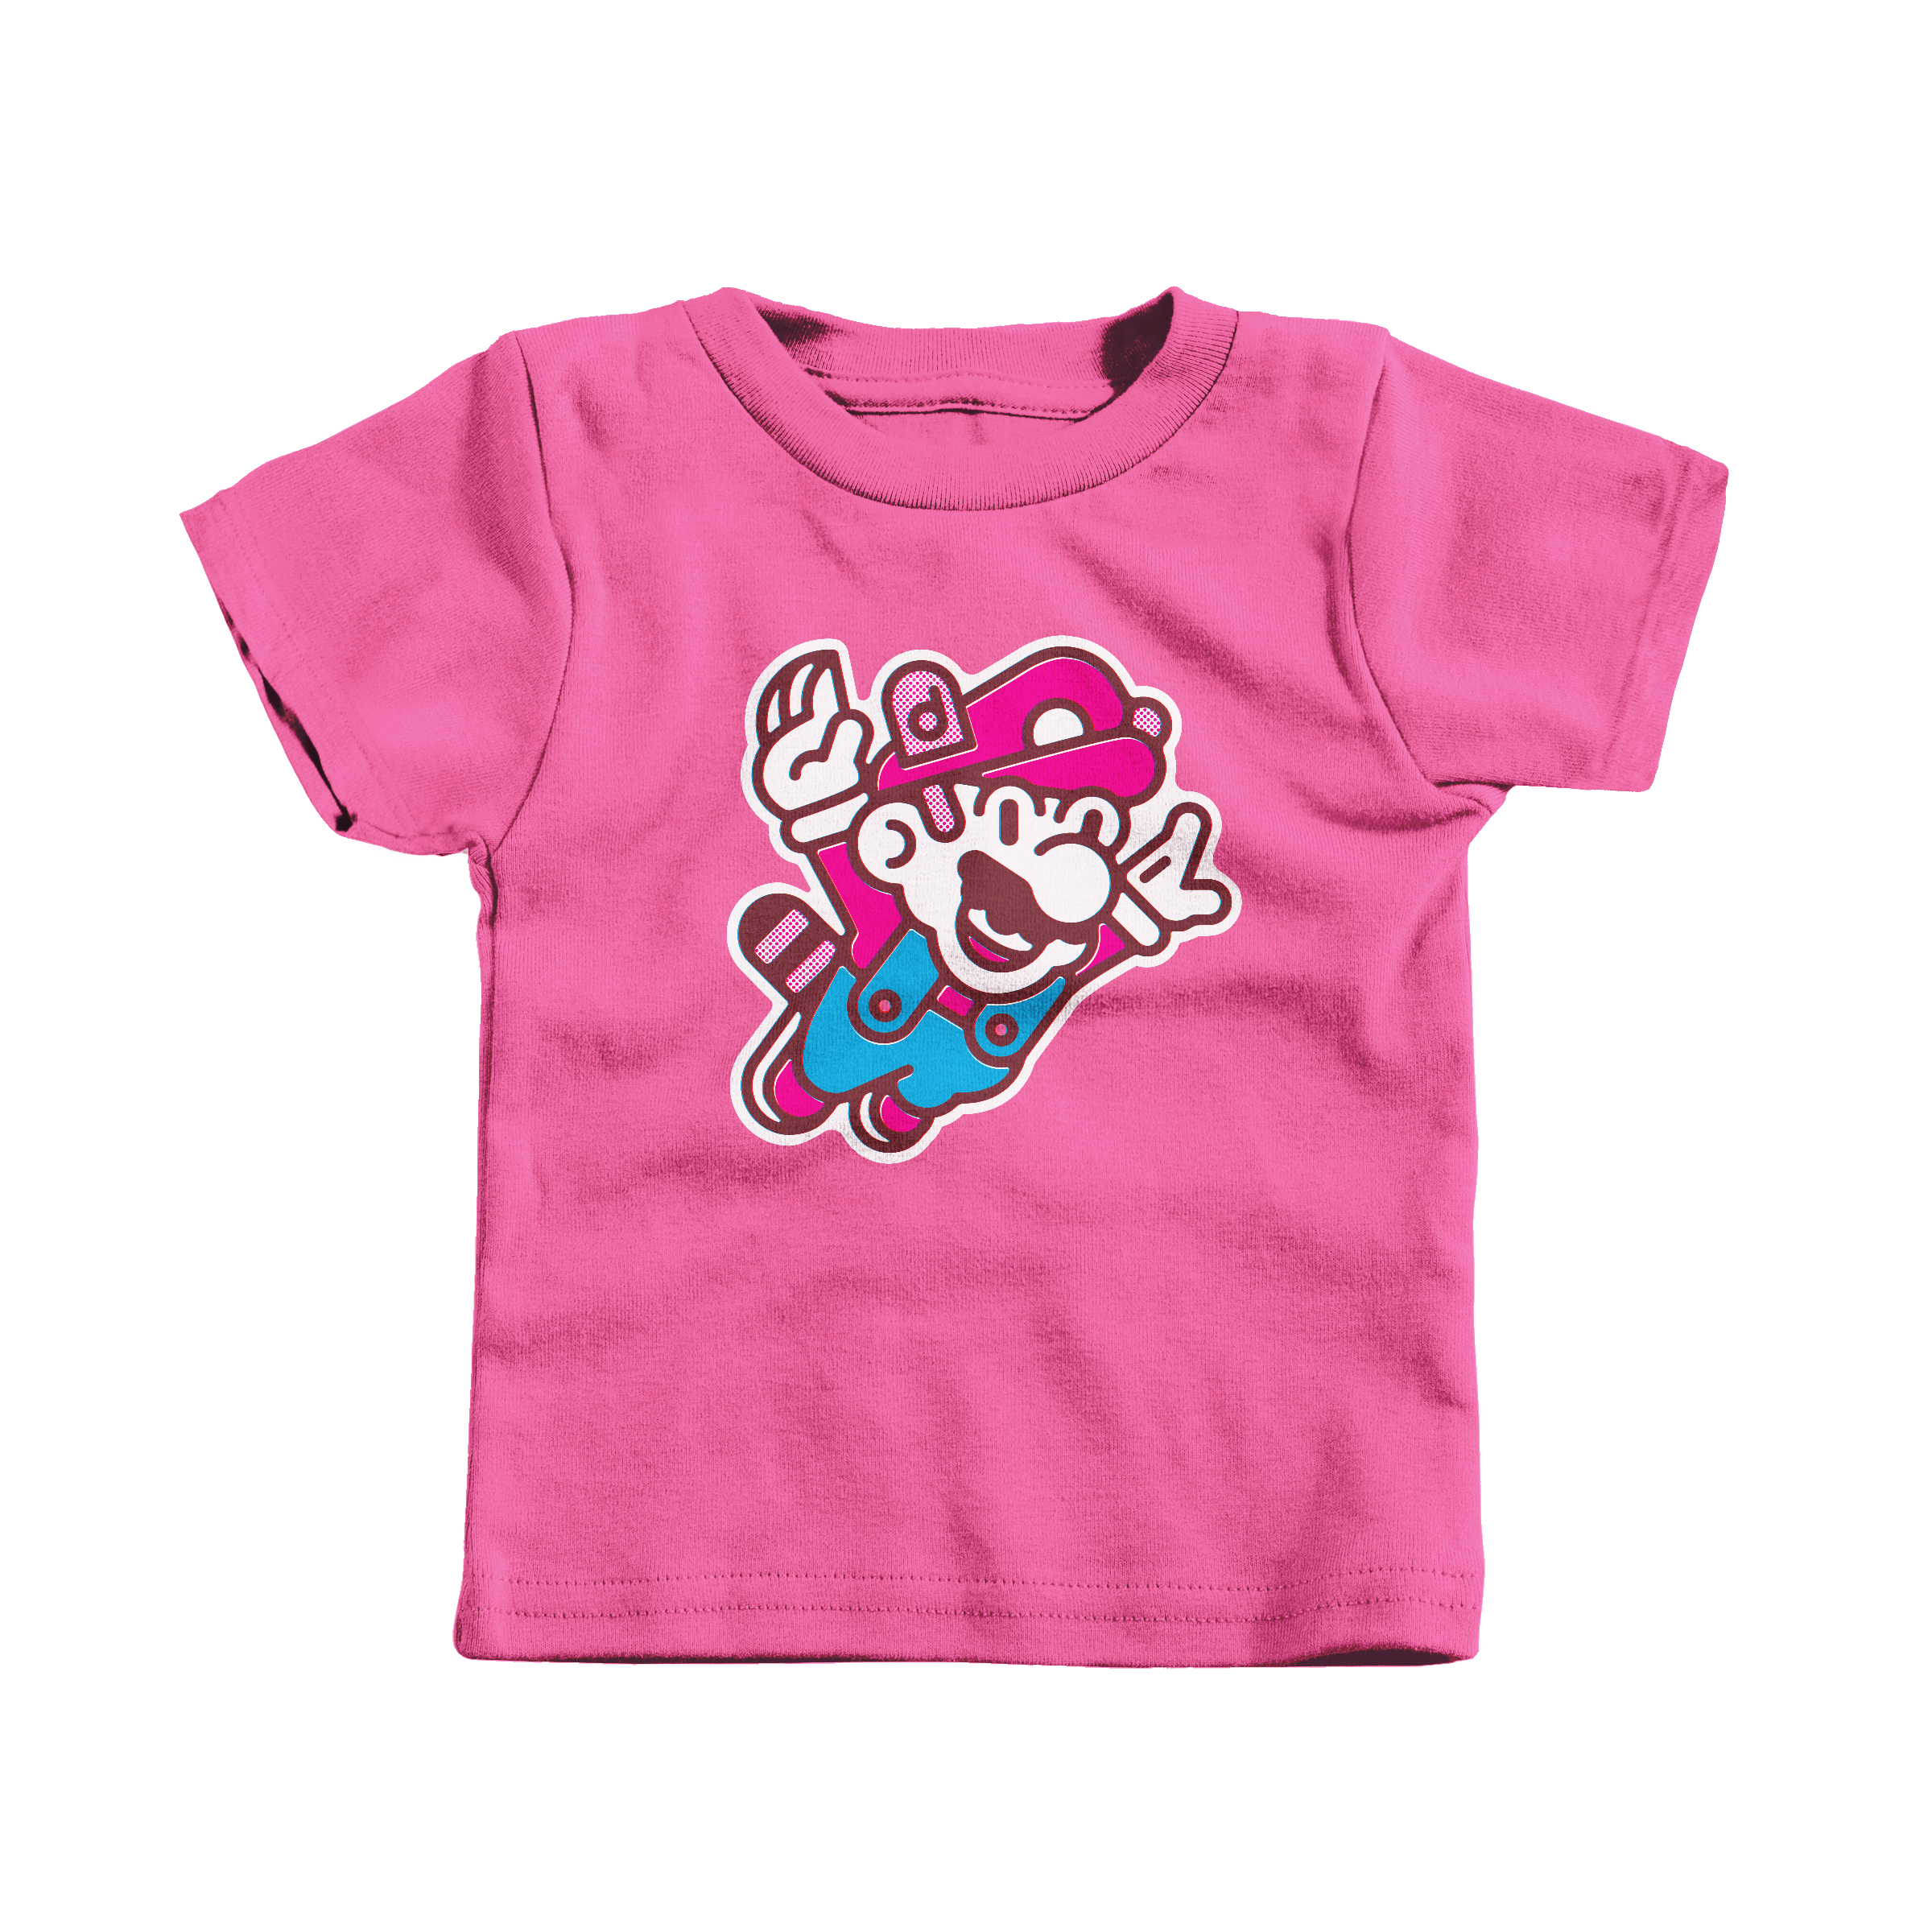 Super Mario Bros. 3 Hot Pink (T-Shirt)